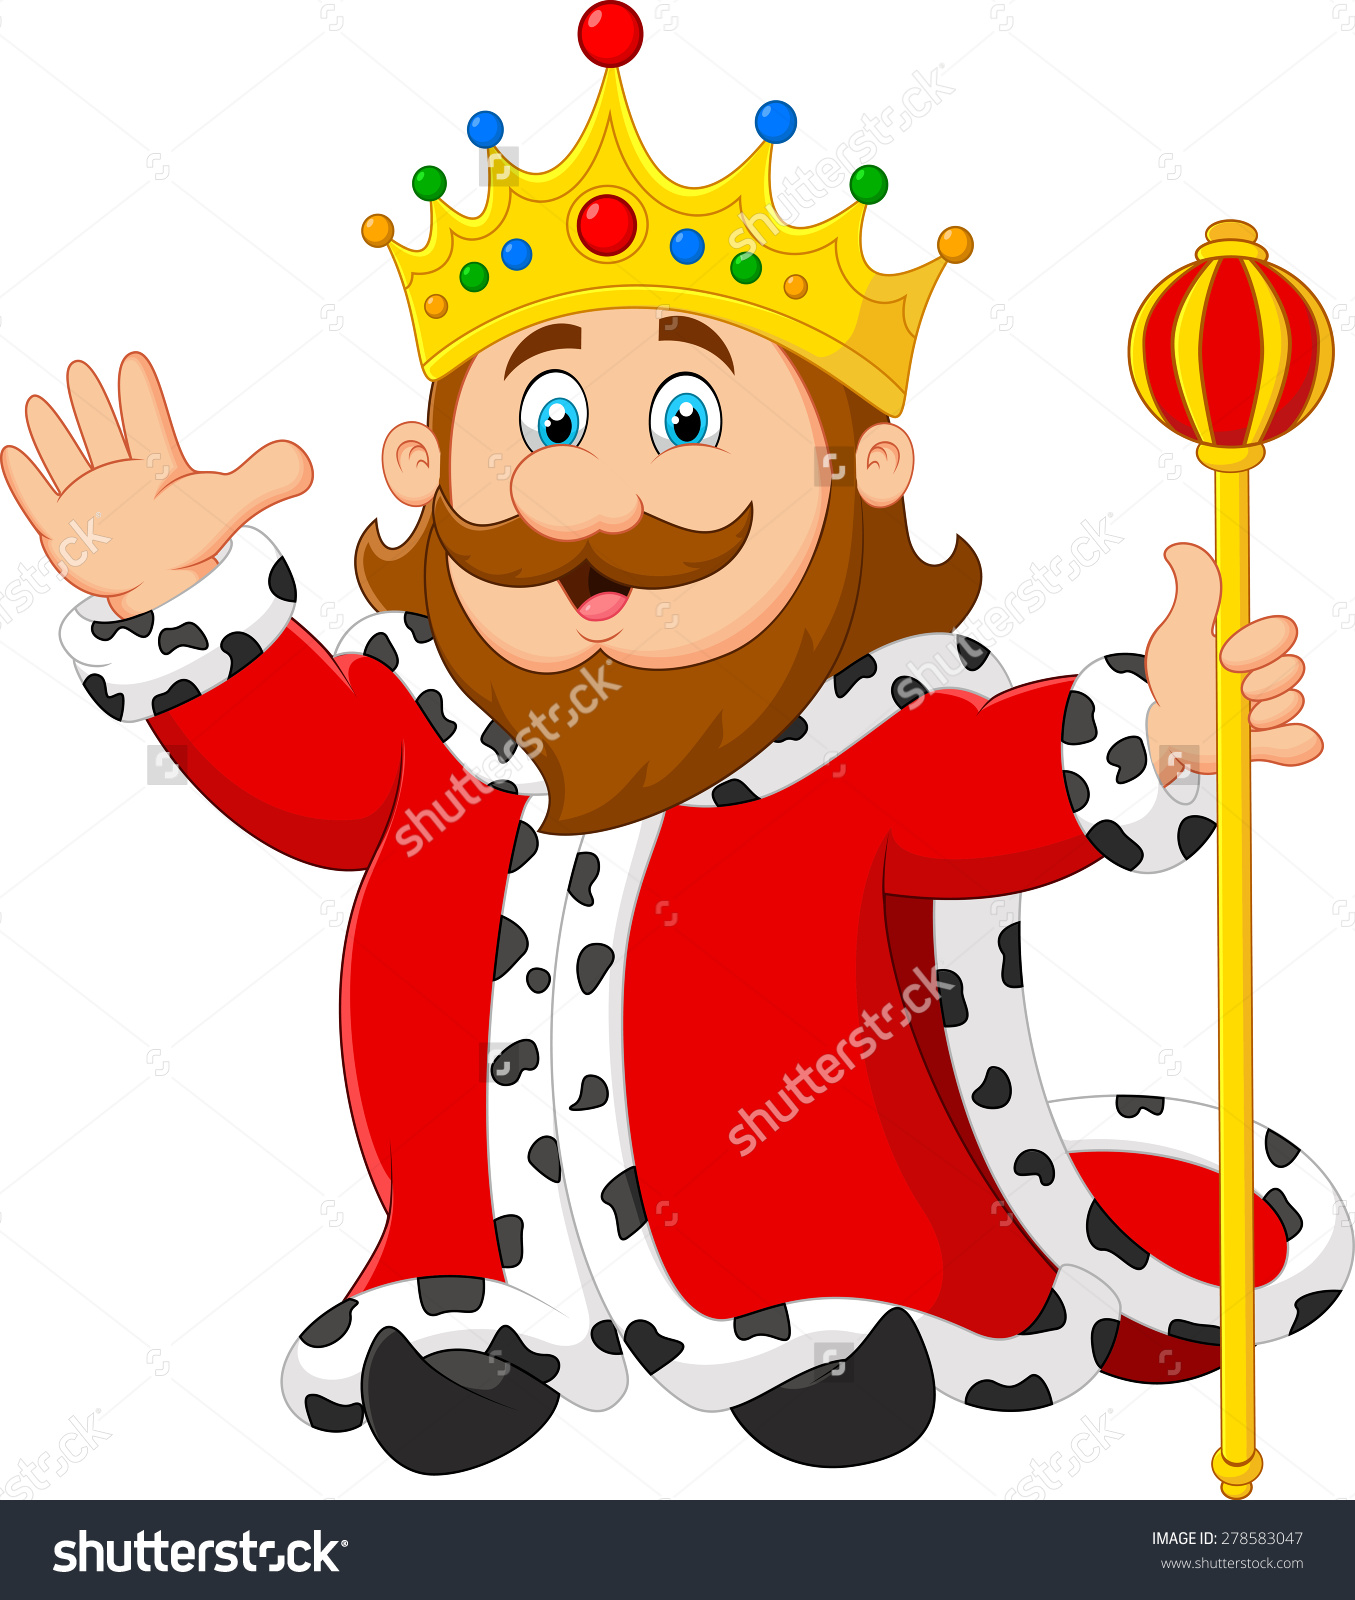 Free cute king on a throne clipart.  clip art clipartlook